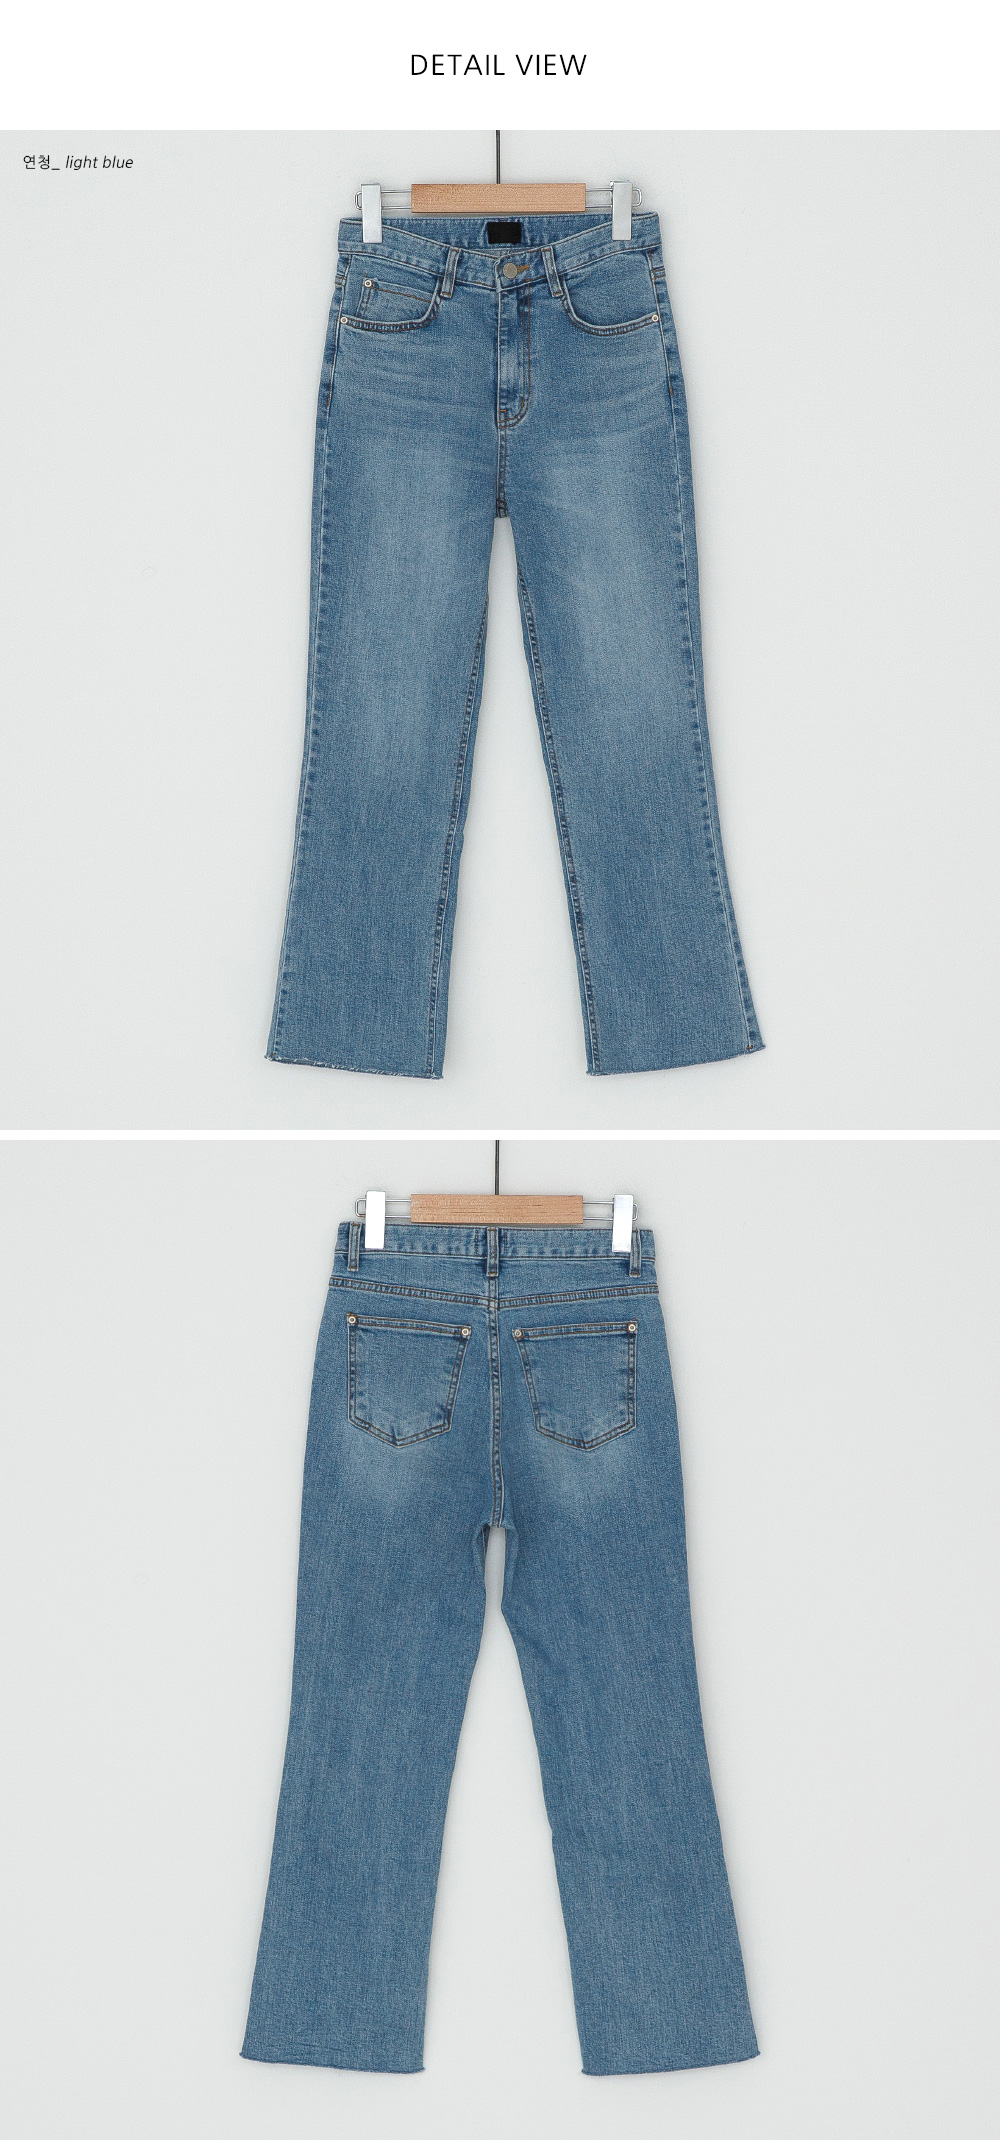 Daily Semi-Boots Cut Jeans